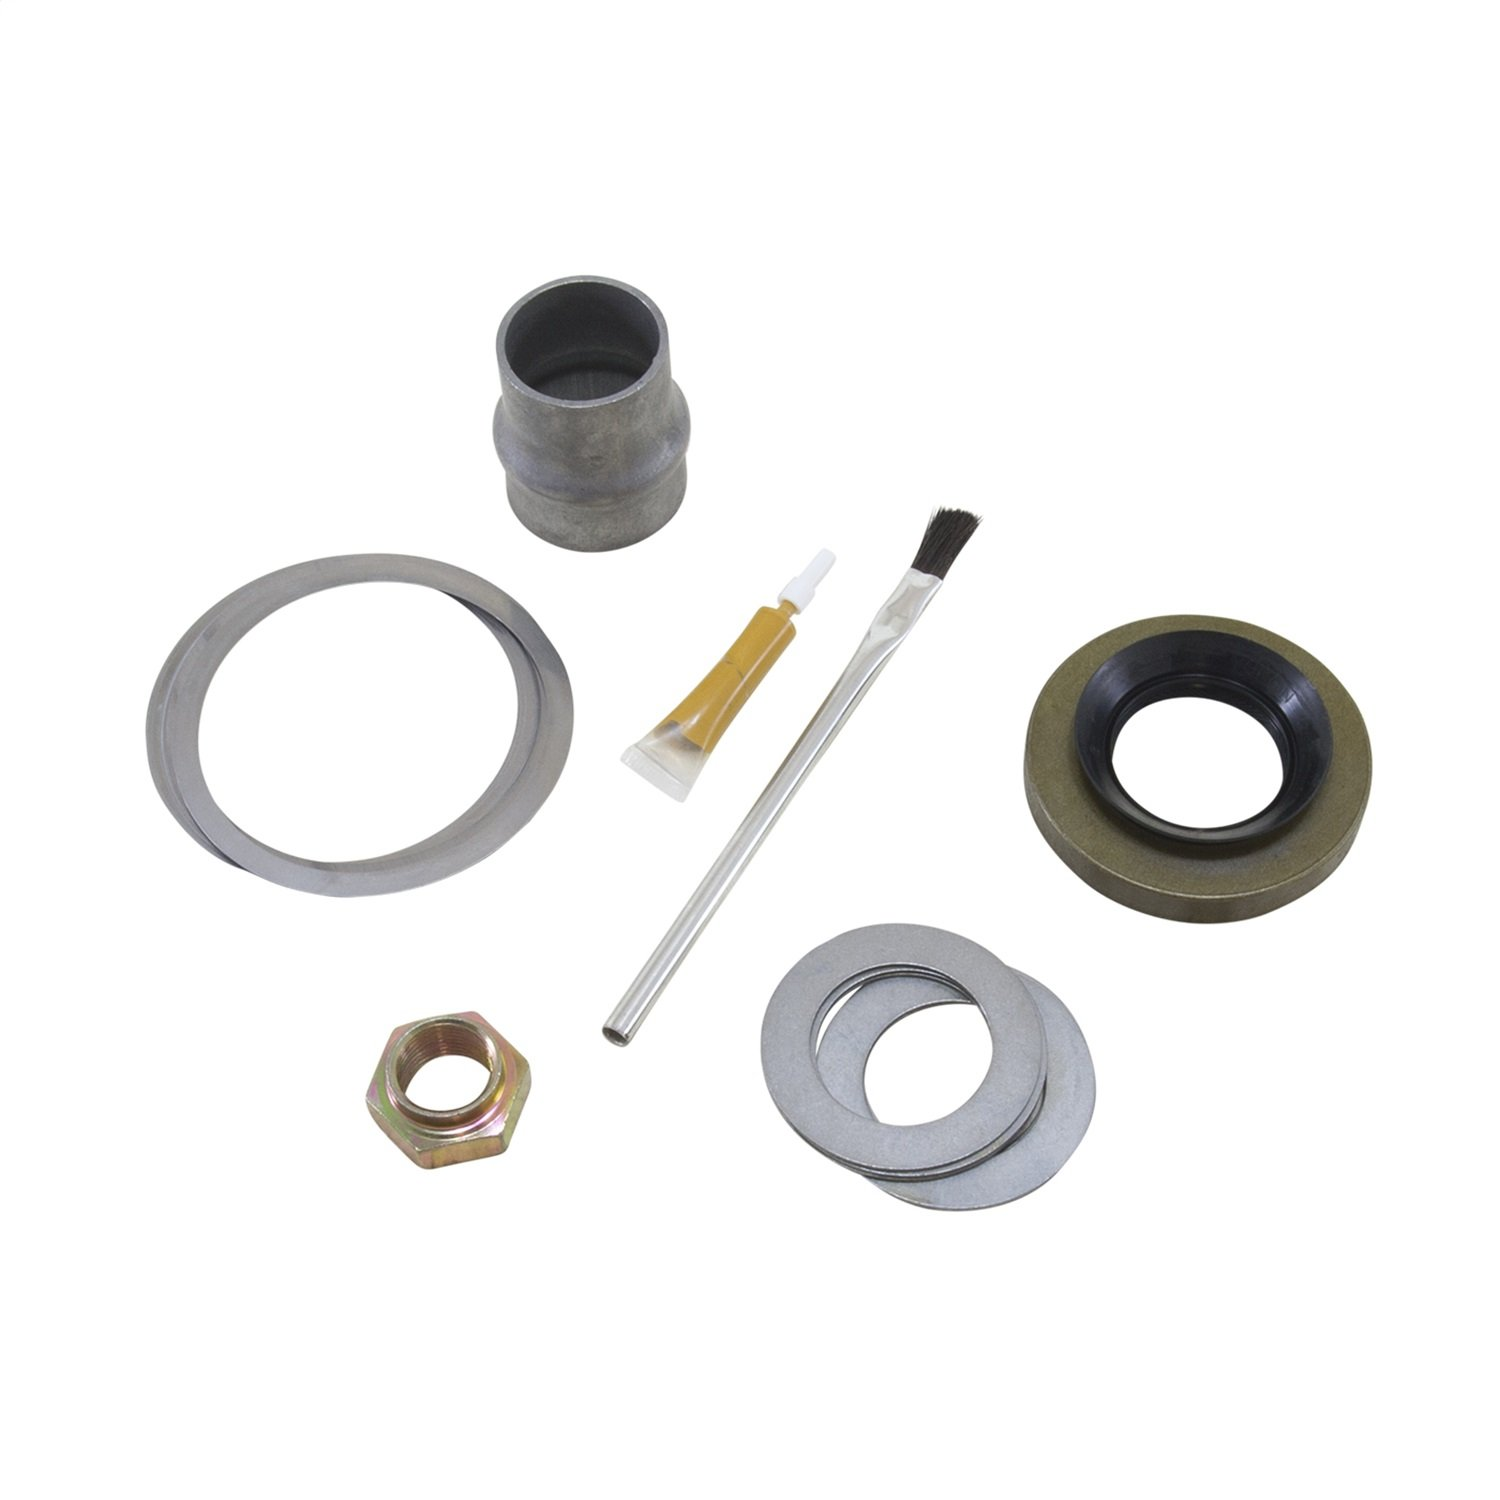 Yukon (MK TLC-REV-B) Minor Installation Kit for Toyota Reverse Rotation Differential